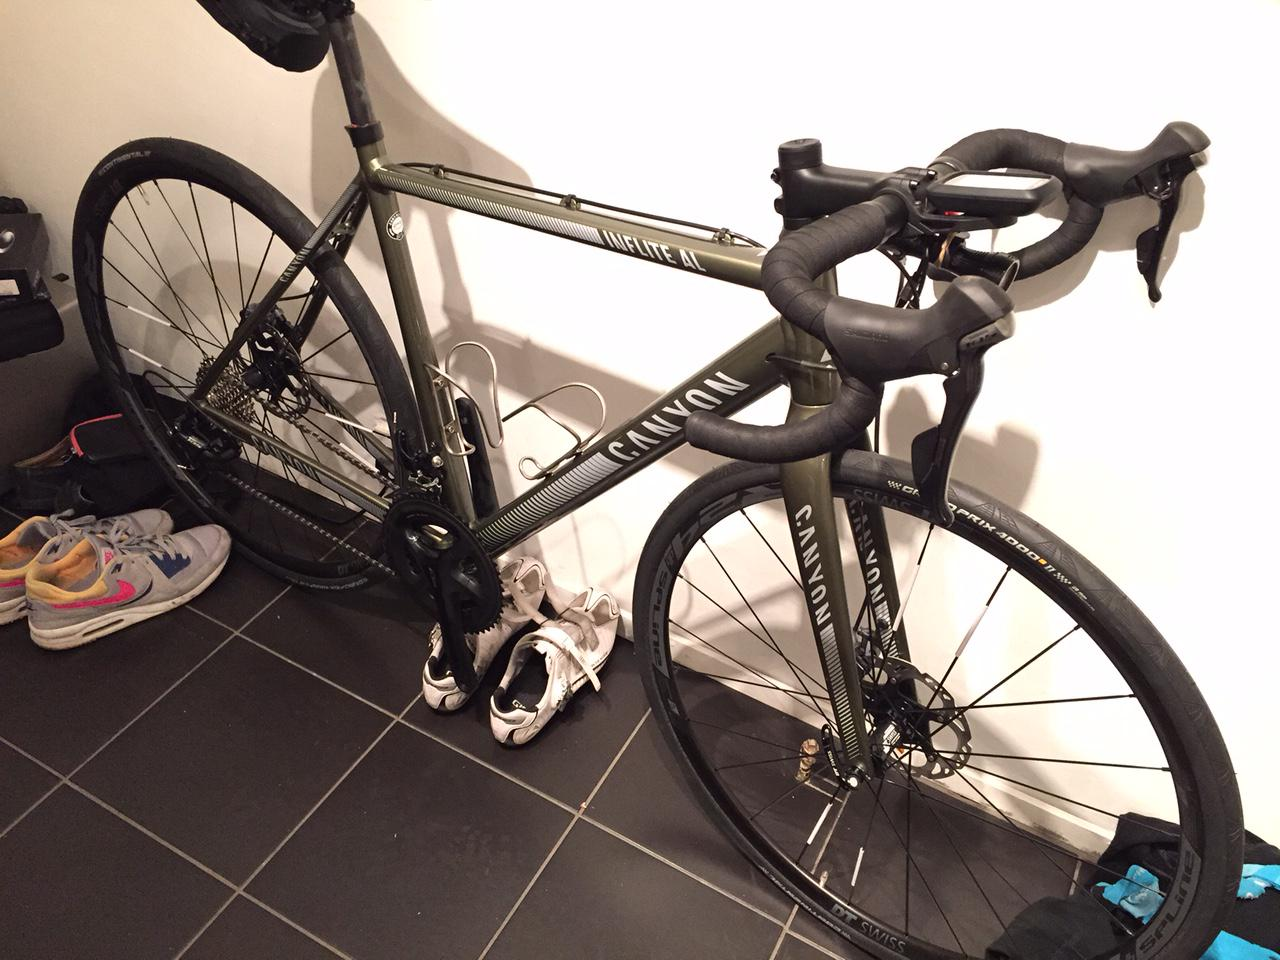 FS: Canyon Inflite AL 8 0S - Medium  Frame, forks and some